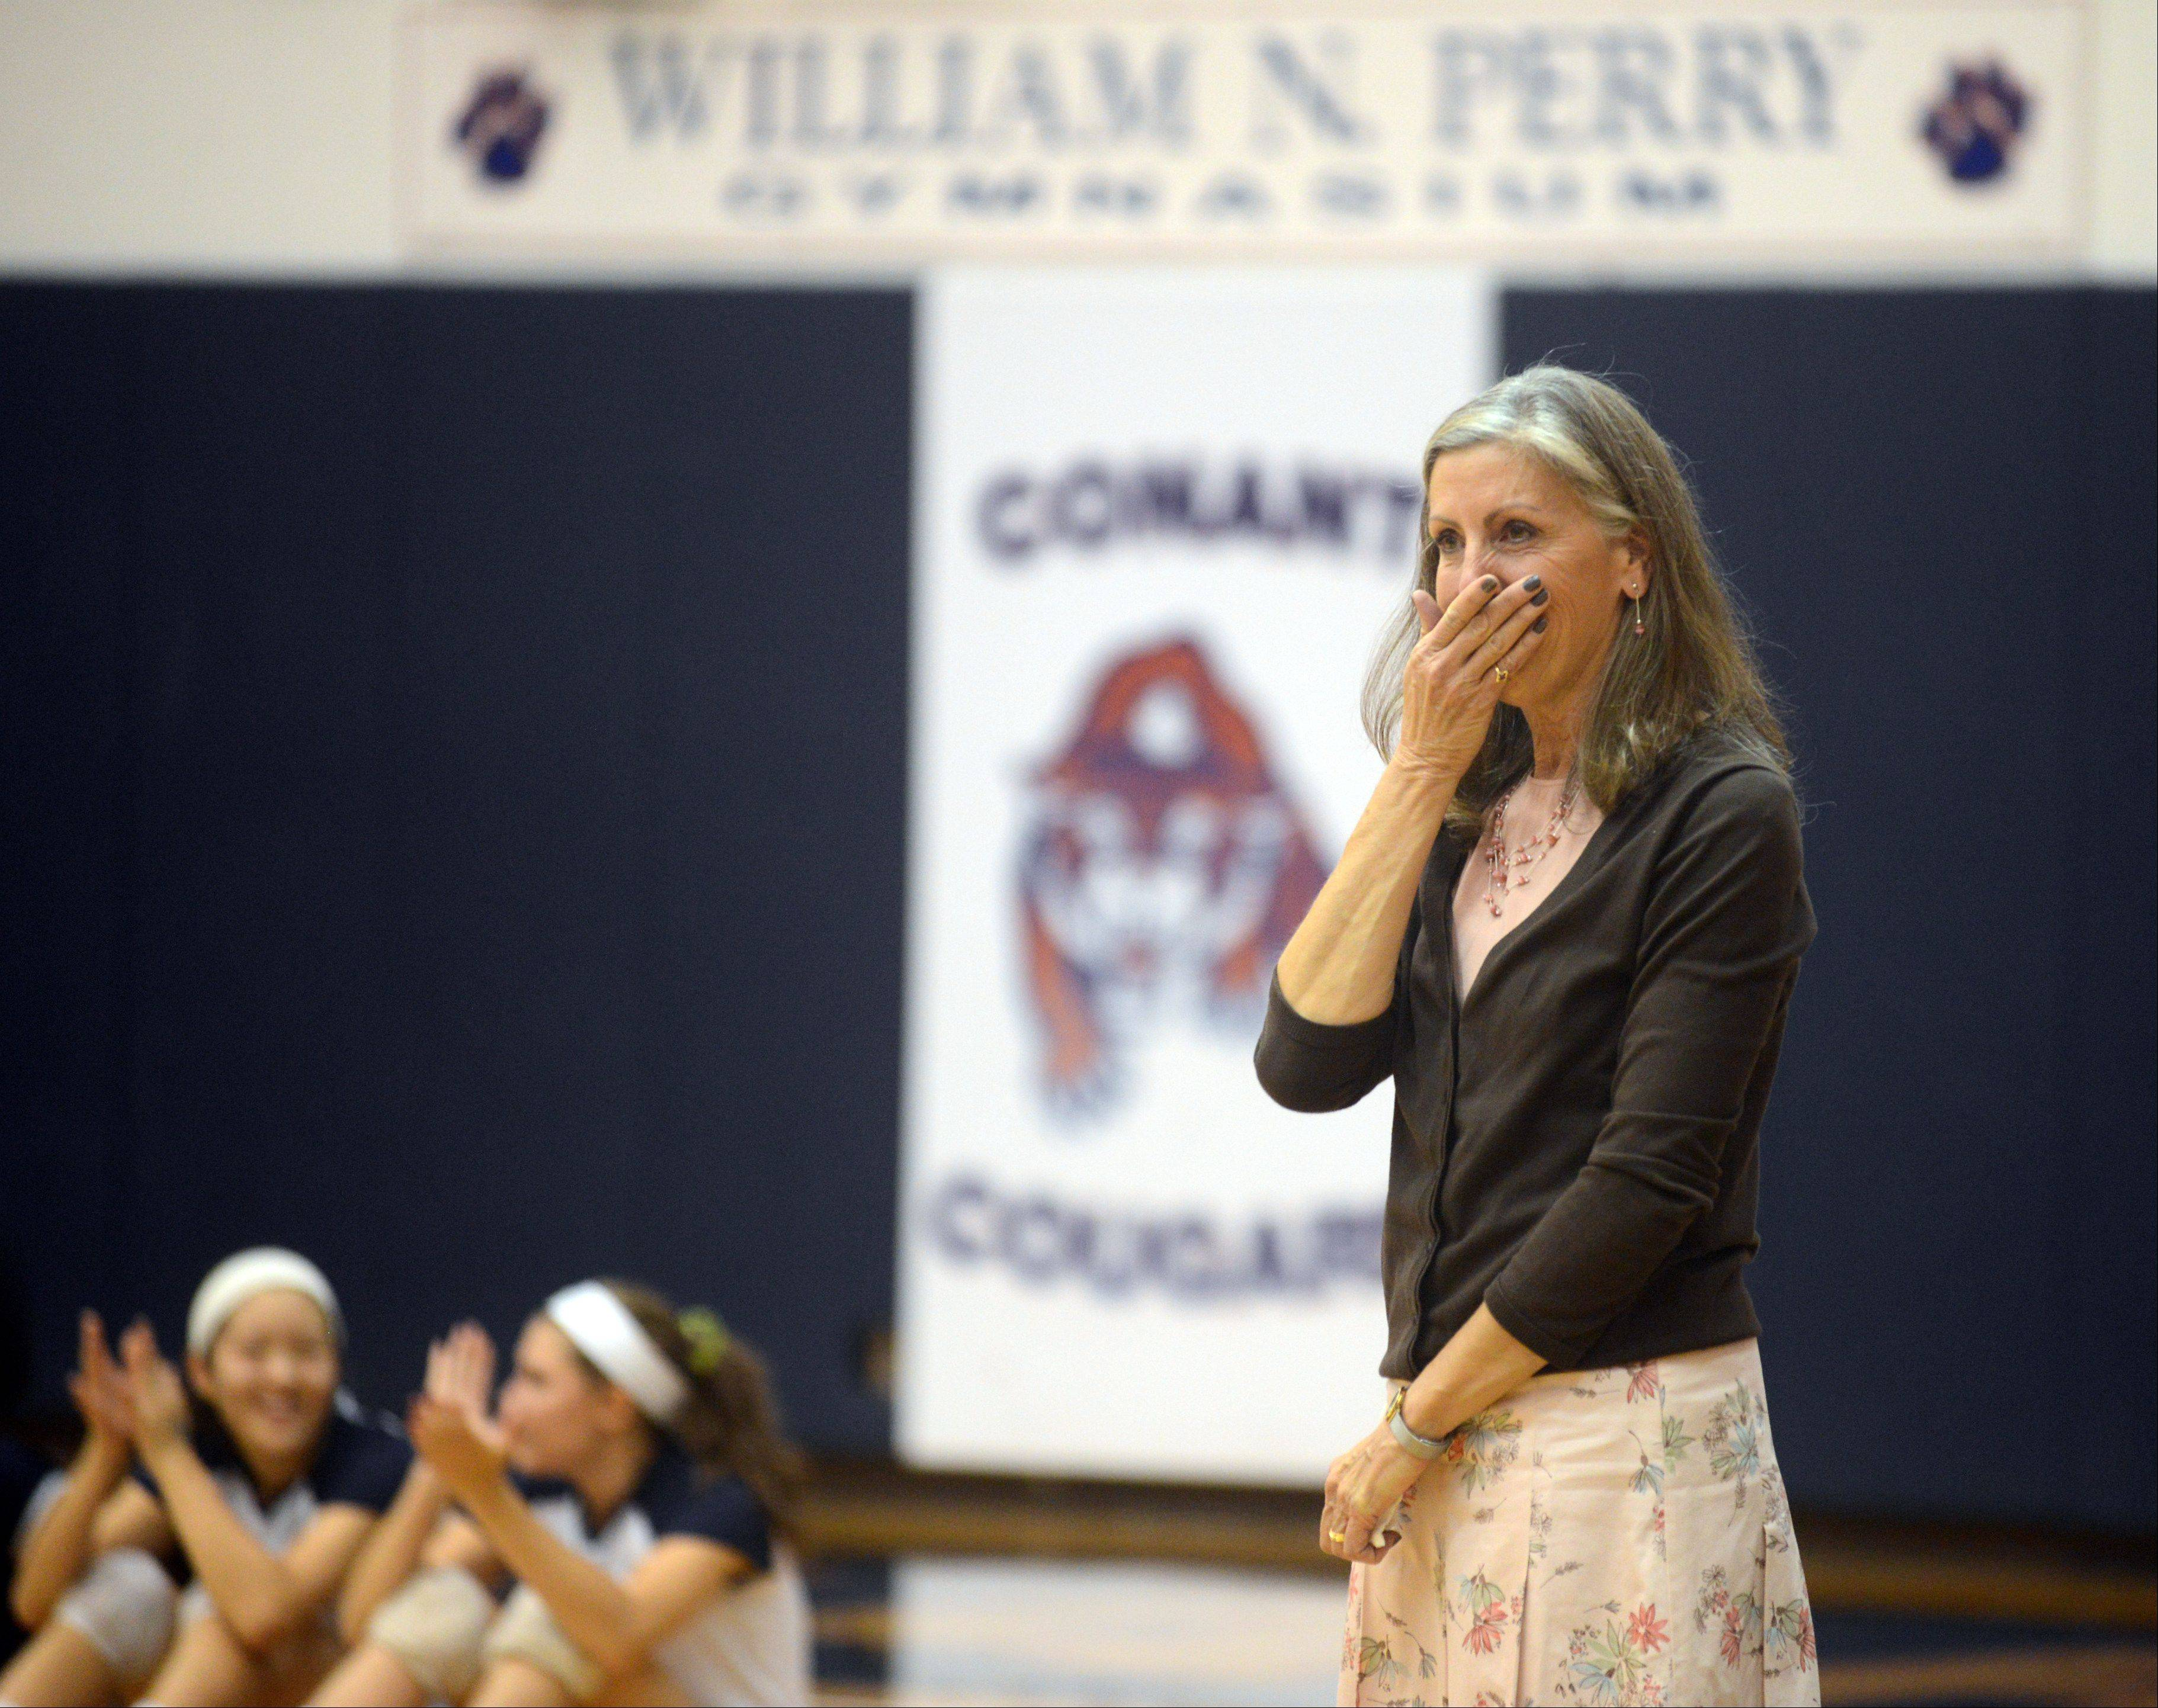 Conant volleyball coach Peggy Scholten was honored before a game with Schaumburg on Tuesday night at William N. Perry Gymnasium. Scholten is retiring after this, her 37th year of coaching. Here, Scholten reacts after learning that an annual early season tournament will now bear her name.